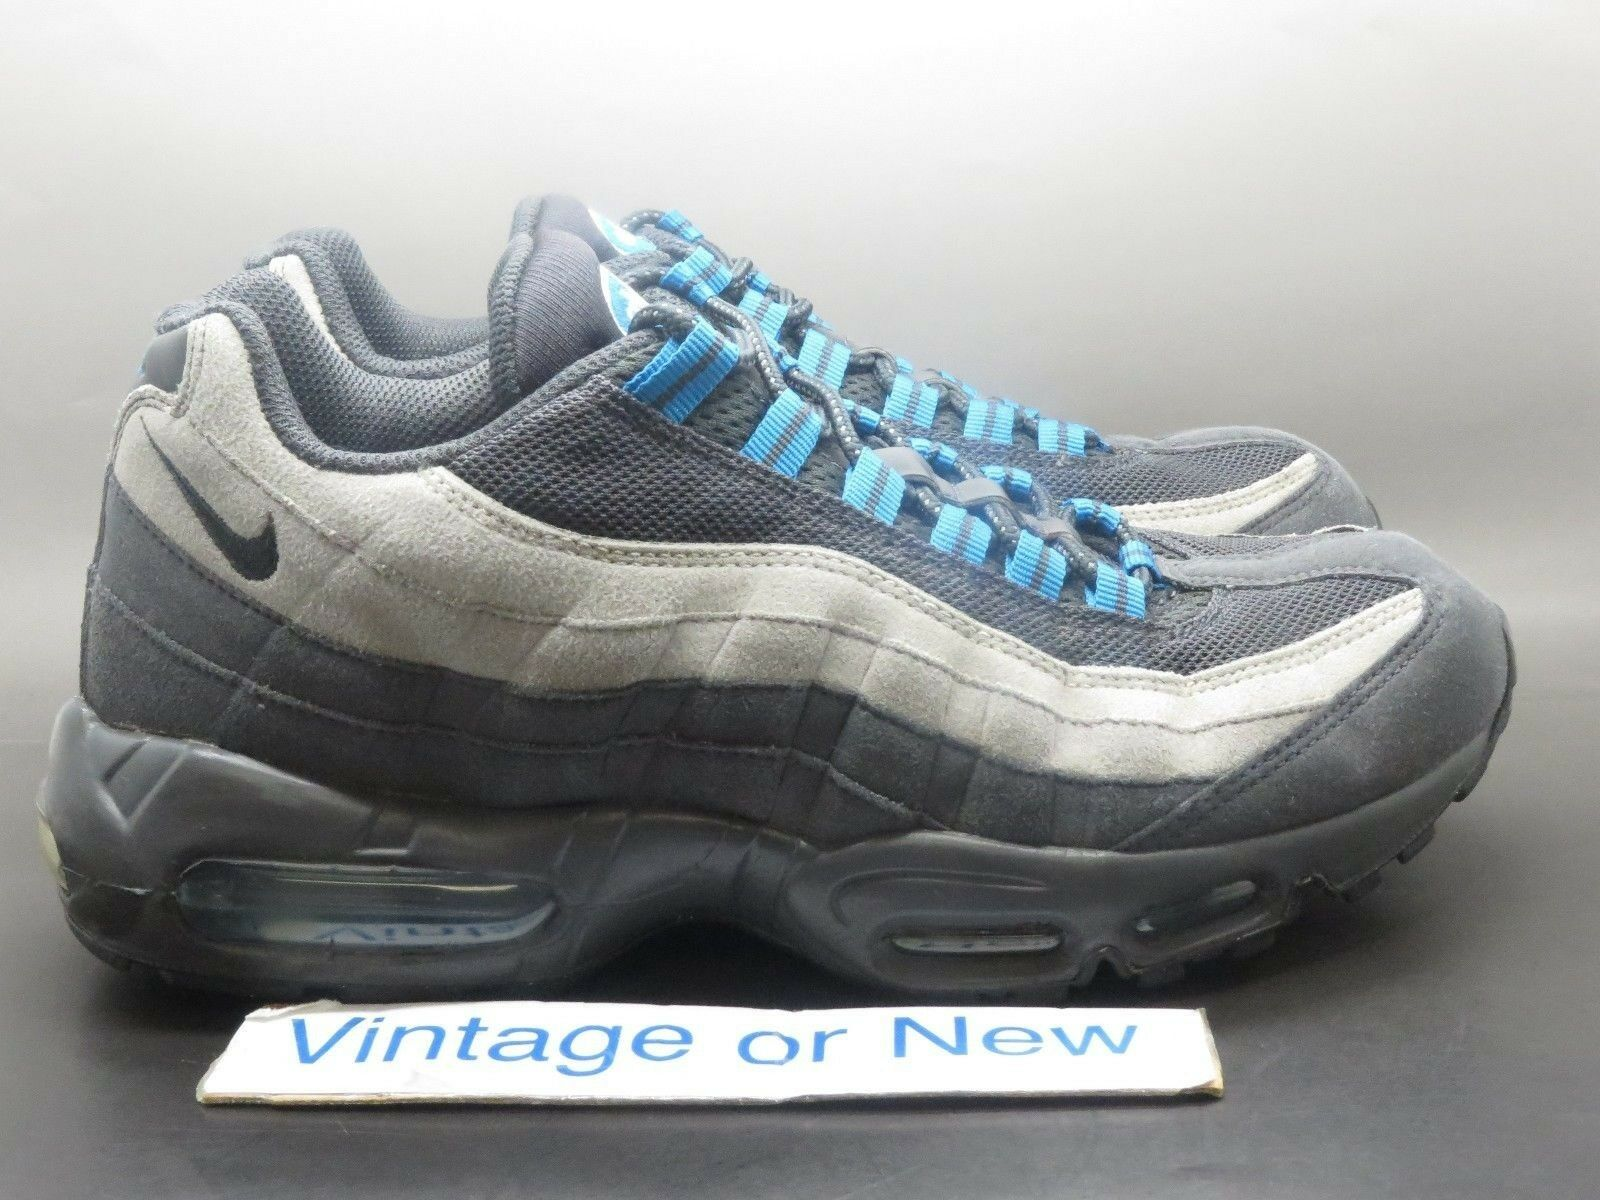 Men's Nike Air Max '95 Anthracite Medium Grey Neutral Grey Running 2018 Price reduction Comfortable and good-looking